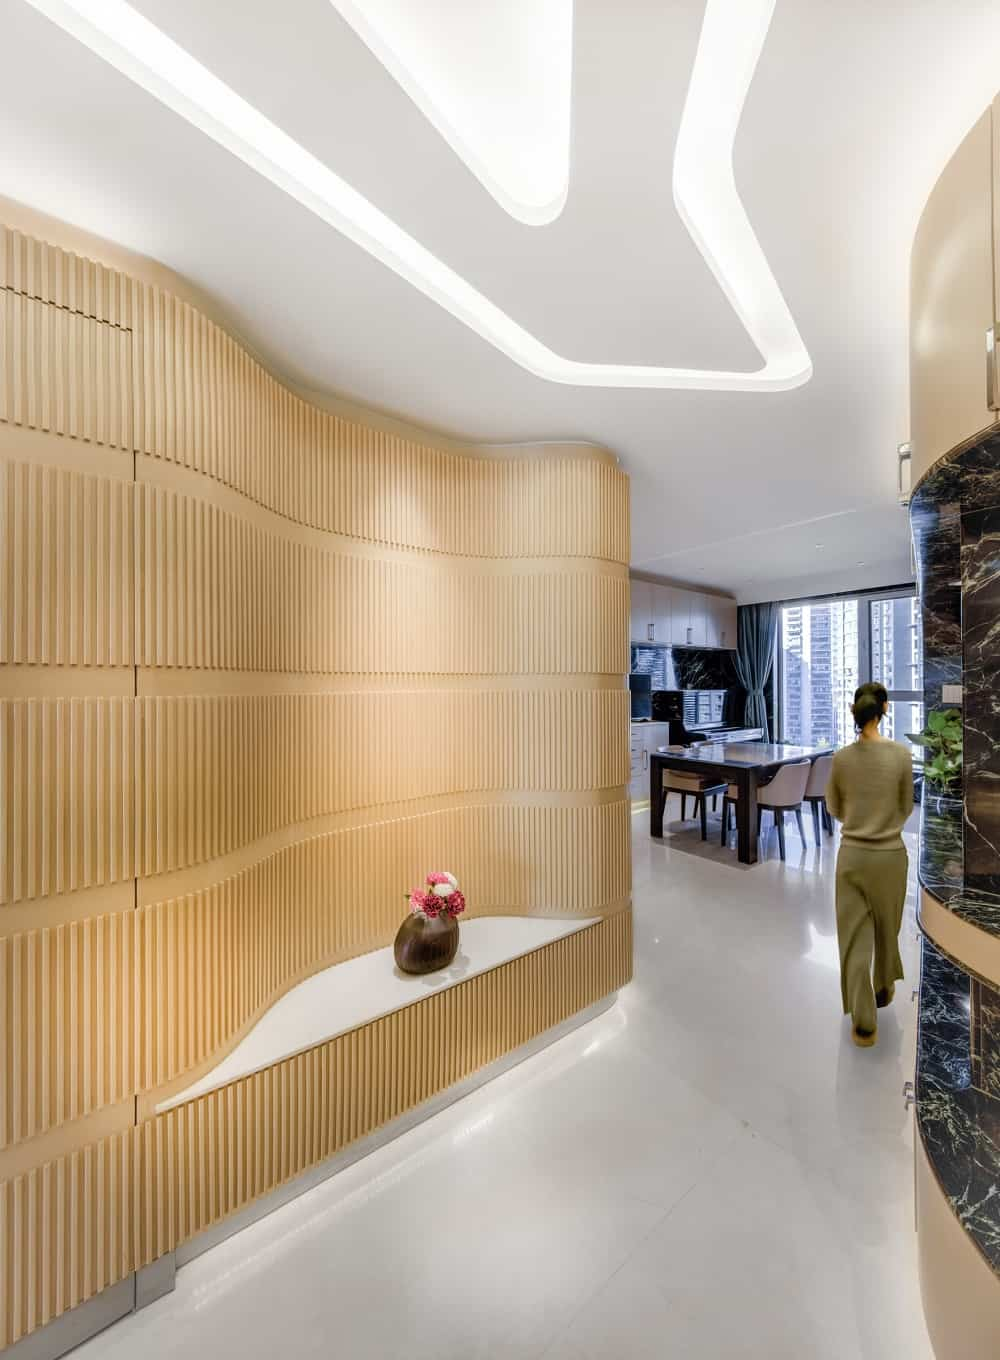 Corridor in the Home Space with Two Kids designed by Atelier Alter.